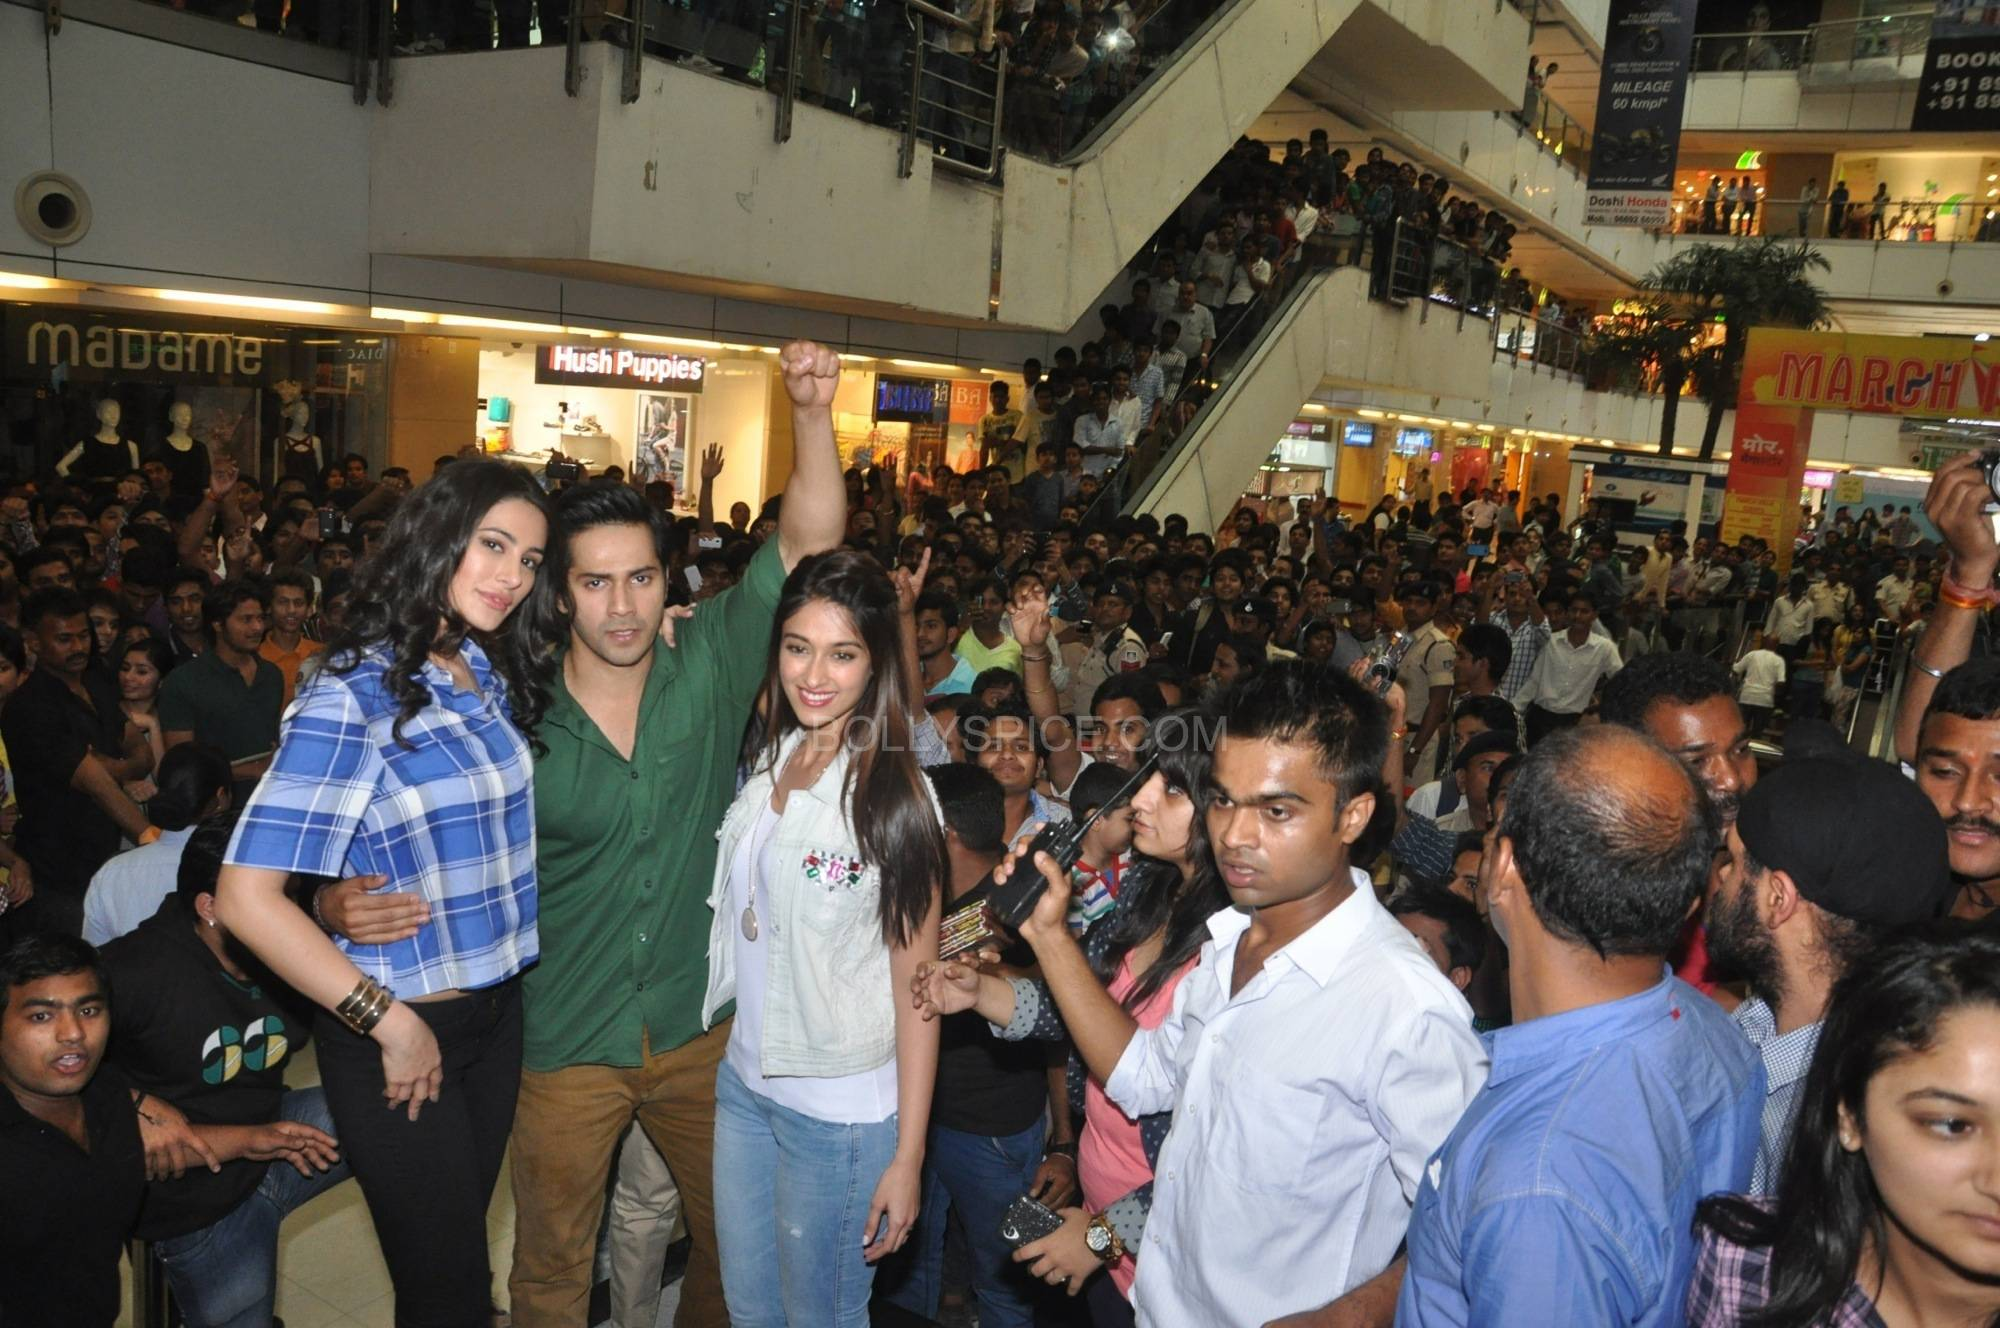 Nargis Fakri Varun Dhawan and Ileana Dcruz at C21 Mall in Indore 2 Varun Dhawan, Ileana D'cruz and Nargis Fakri promote Main Tera Hero in Indore!